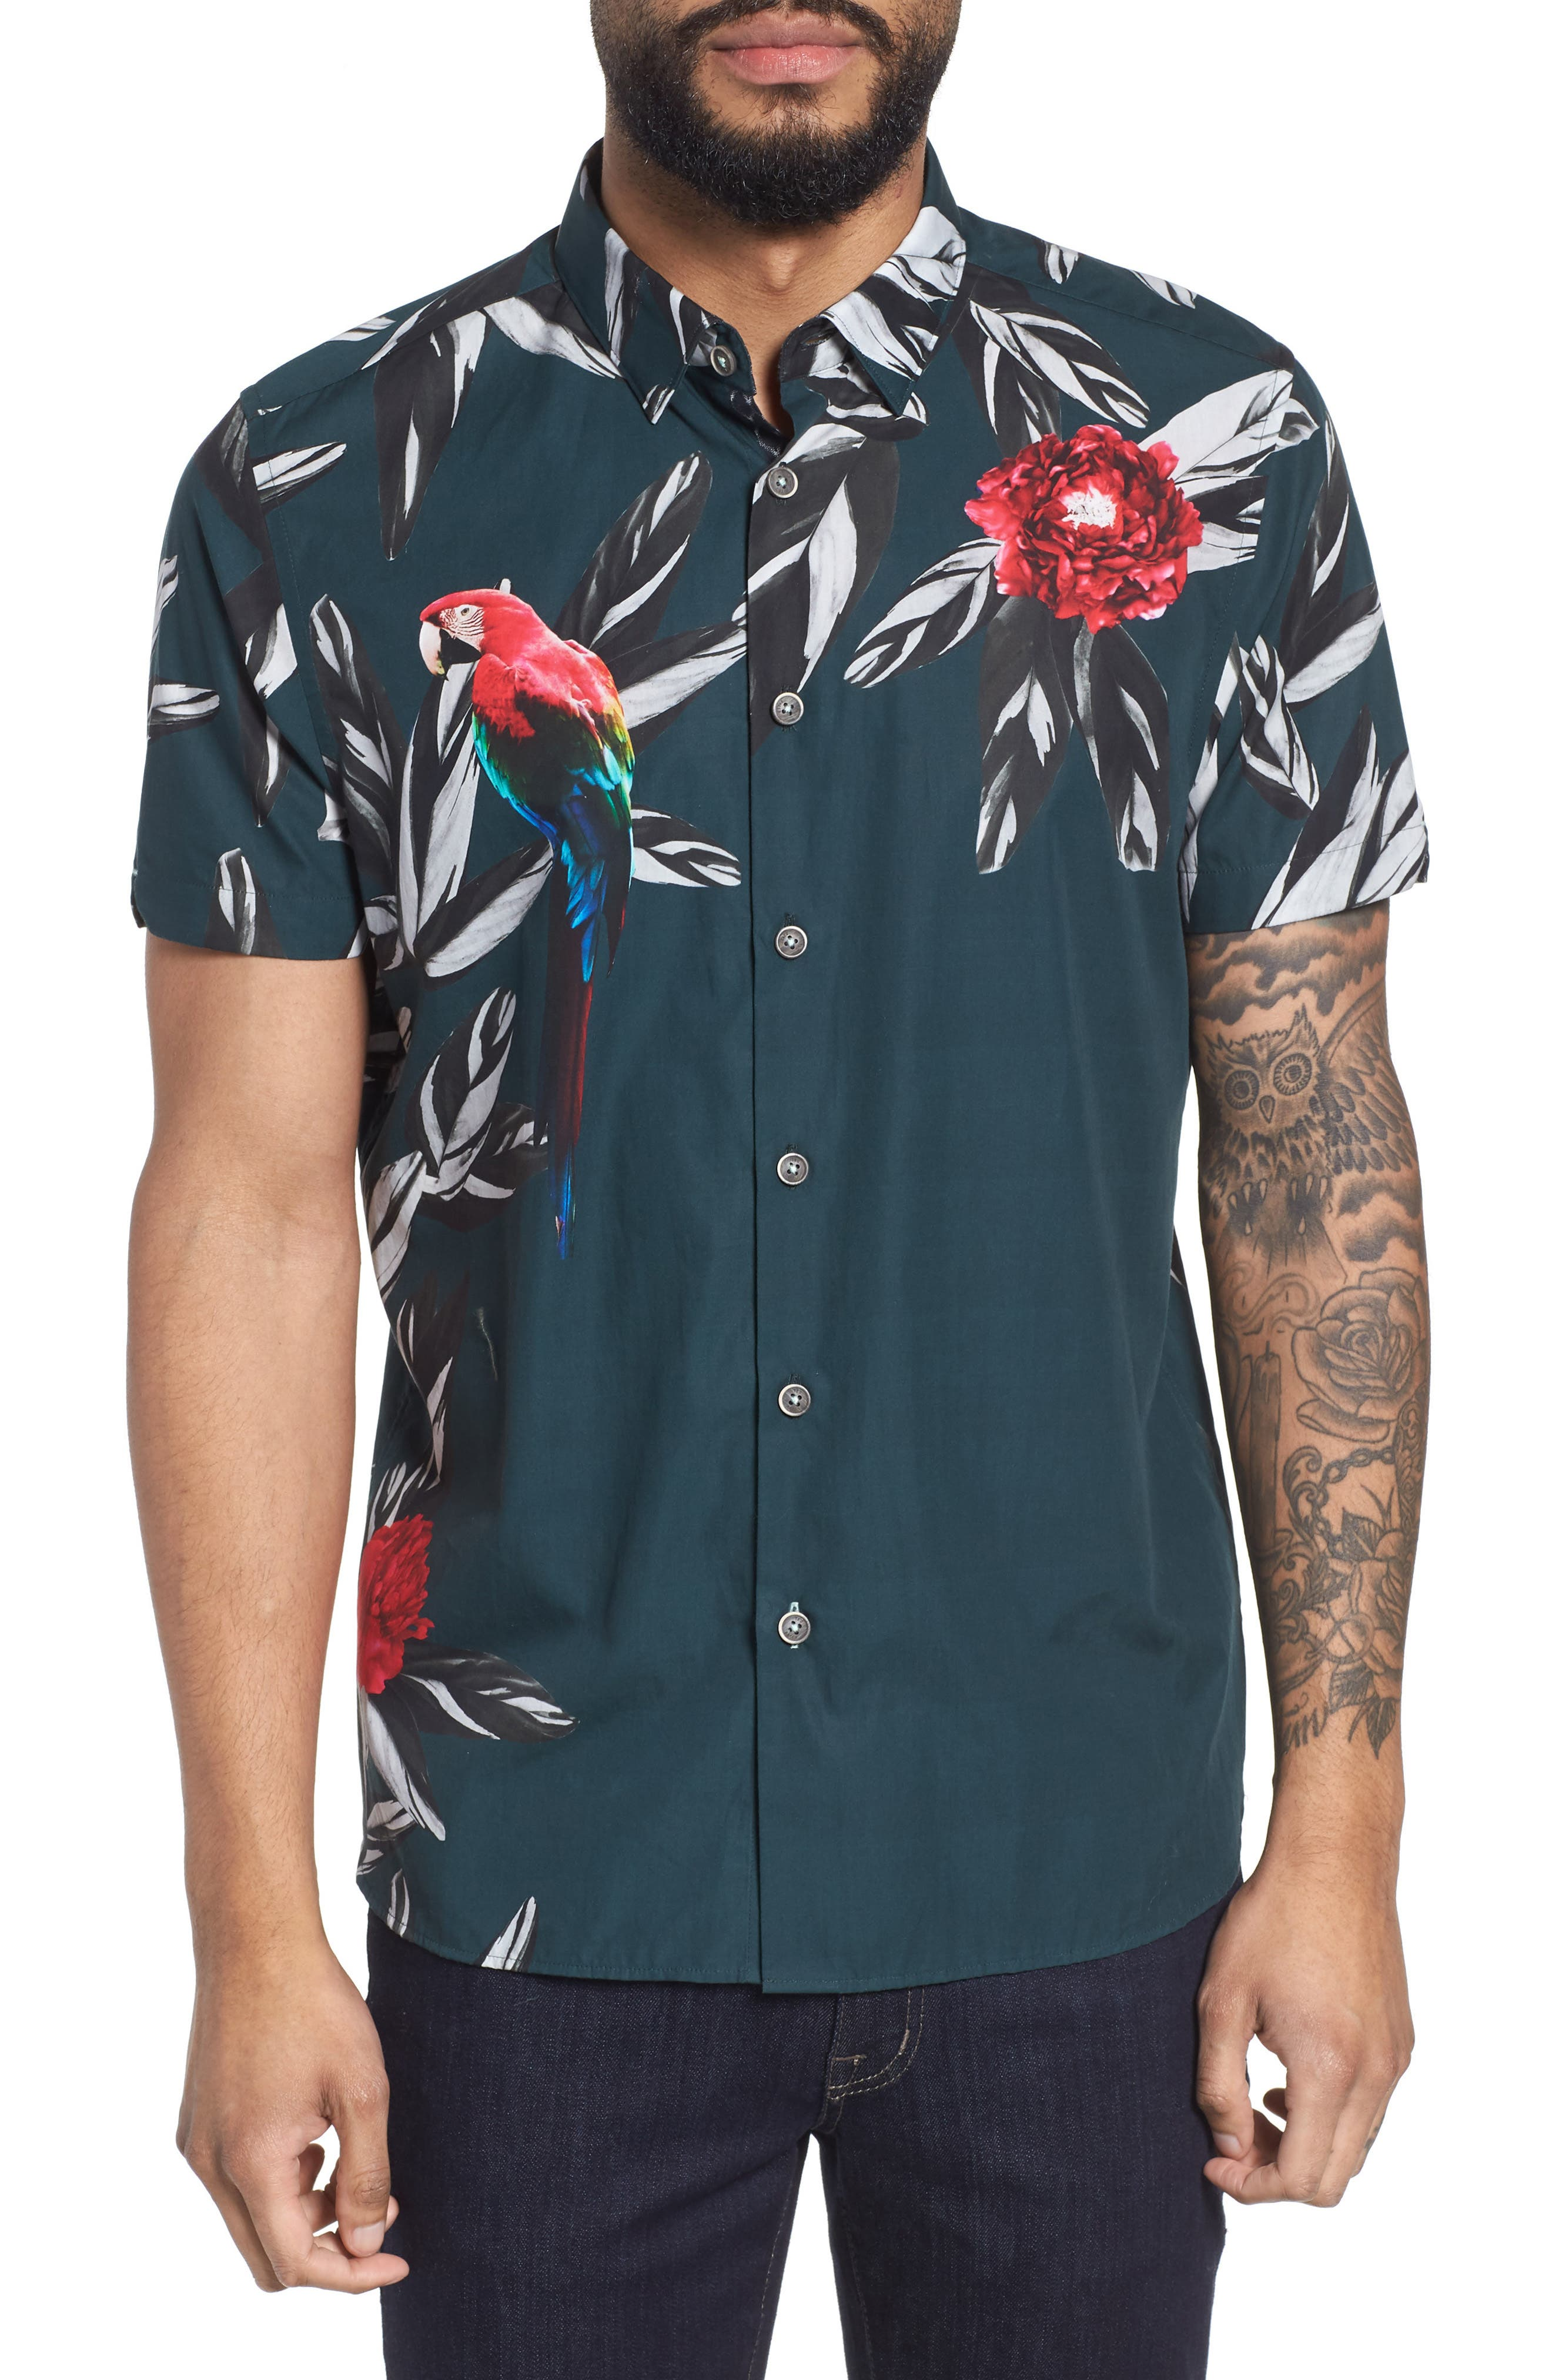 Parrot Print Short Sleeve Sport Shirt,                             Main thumbnail 1, color,                             Dark Green